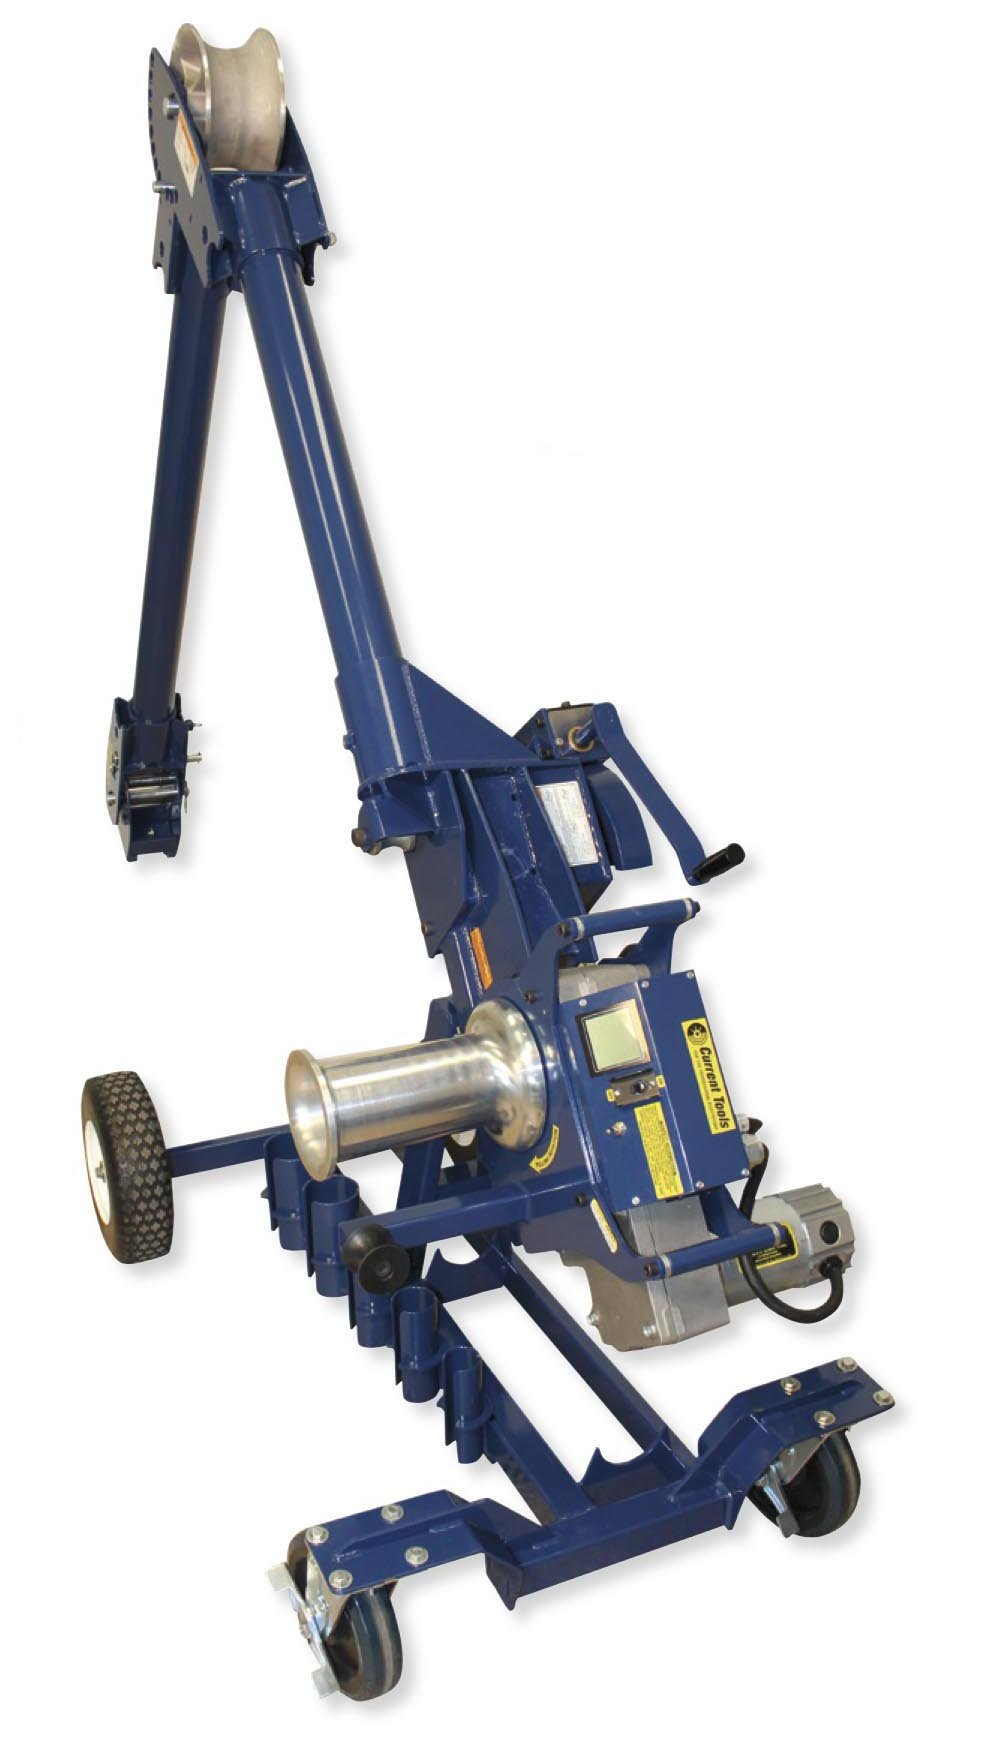 Current Tools 100 RotaBoom Cable Puller with Carriage